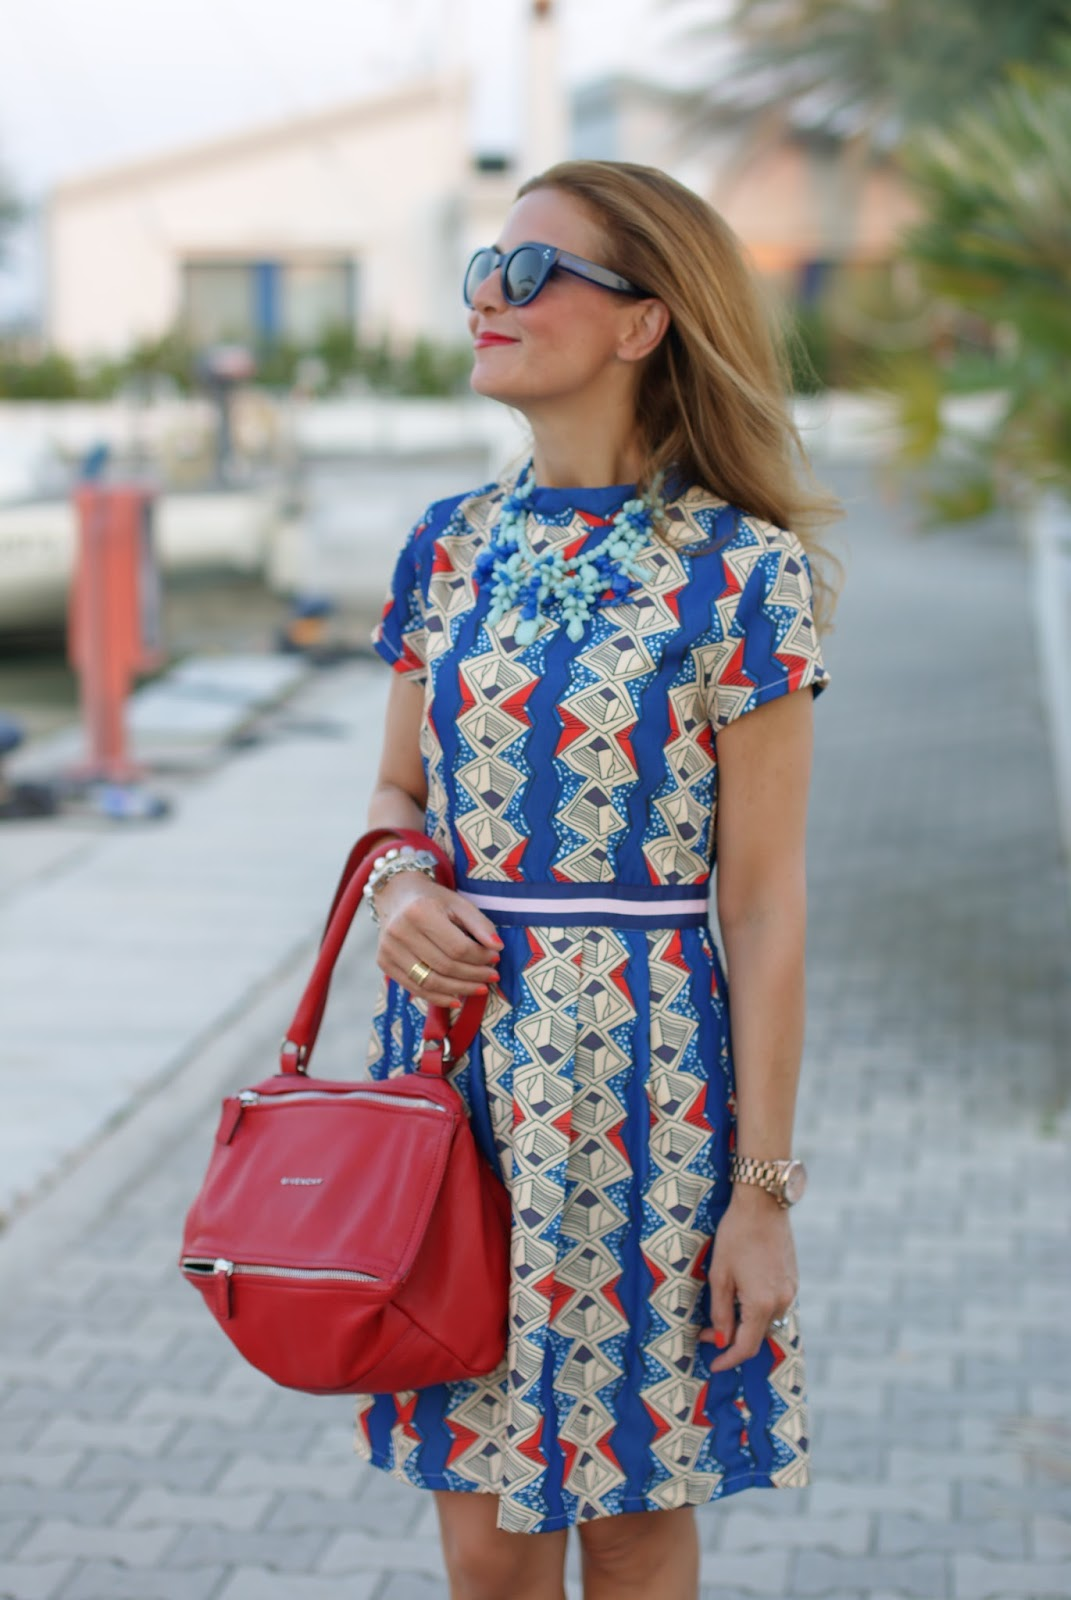 Zaful argyle print short dress, Givenchy Pandora bag in red and Nando Muzi suede slingbacks on Fashion and Cookies fashion blog, fashion blogger style